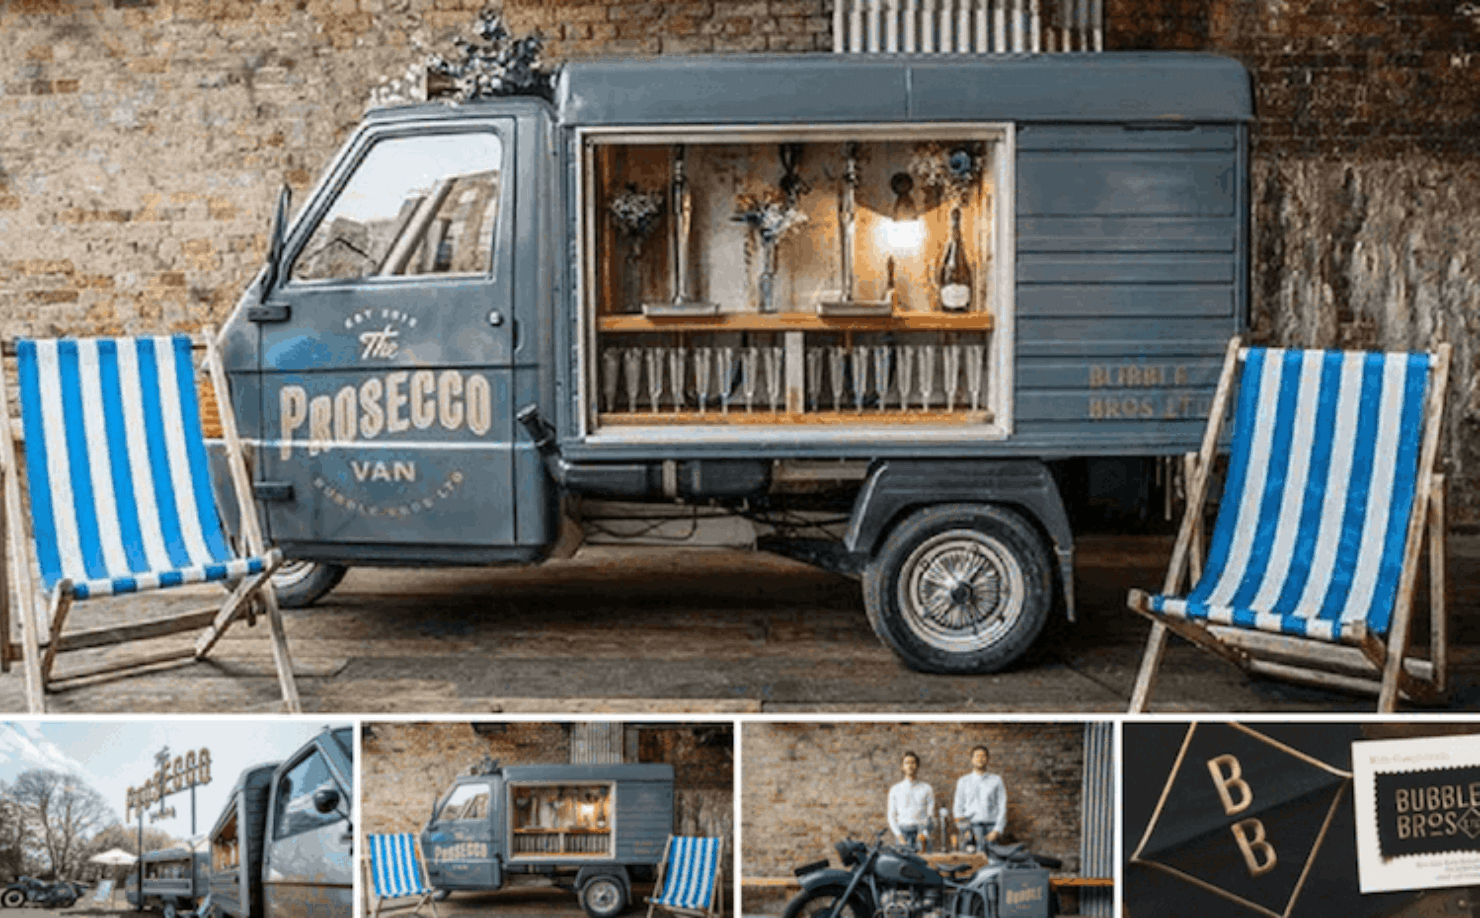 The Prosecco Van by the Bubble Bros - South East